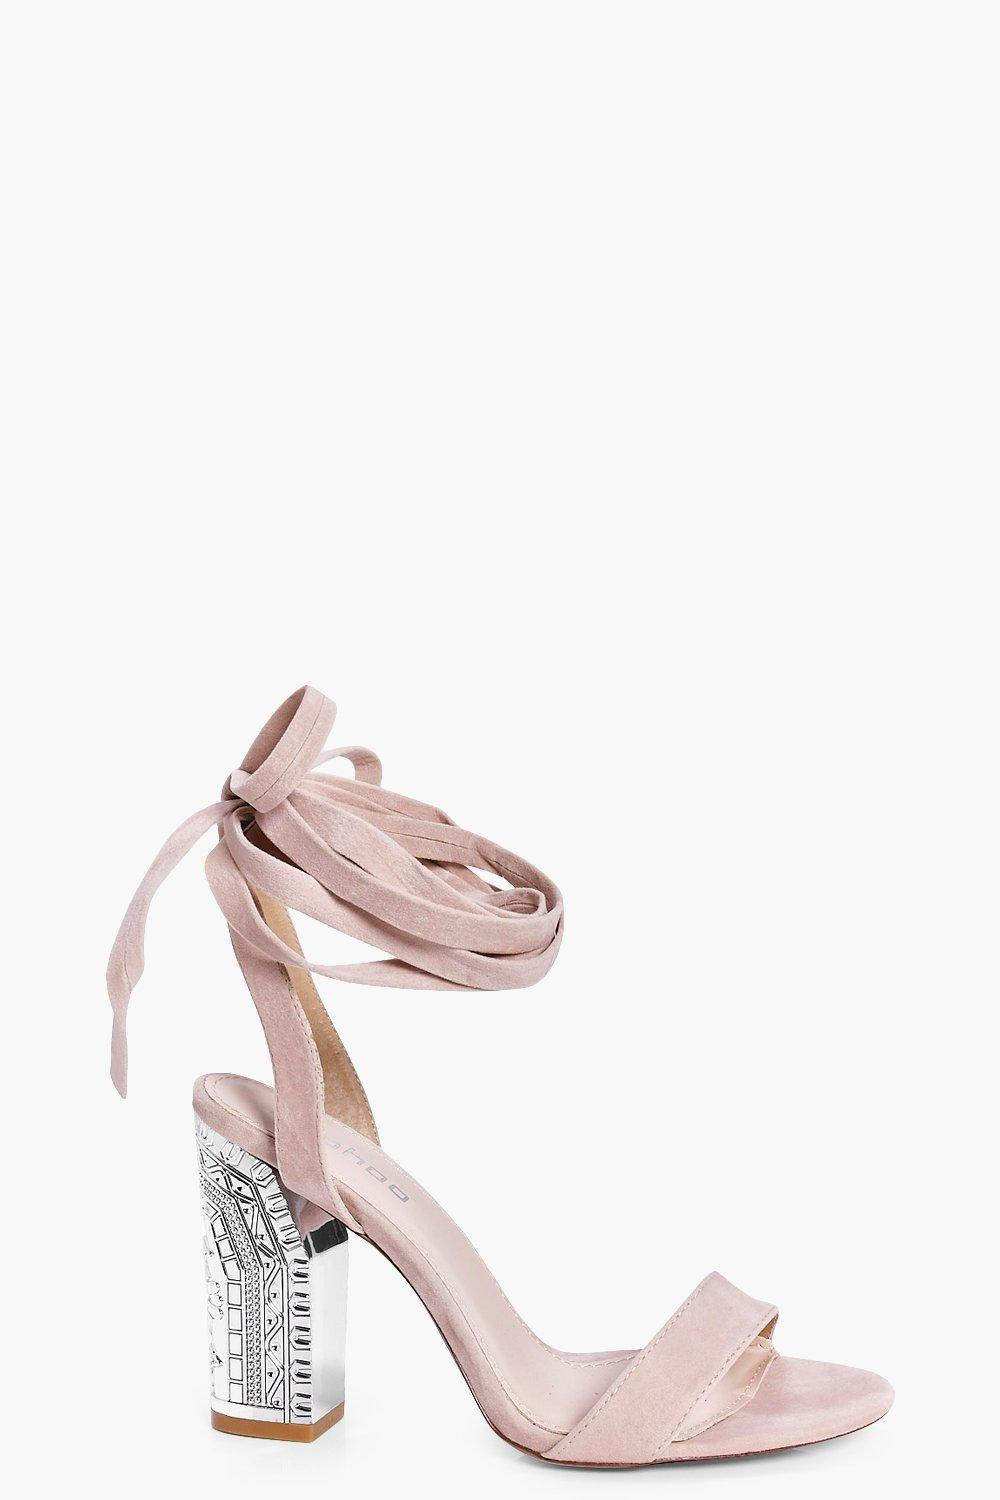 Orla Interest Heel Two Part Sandal